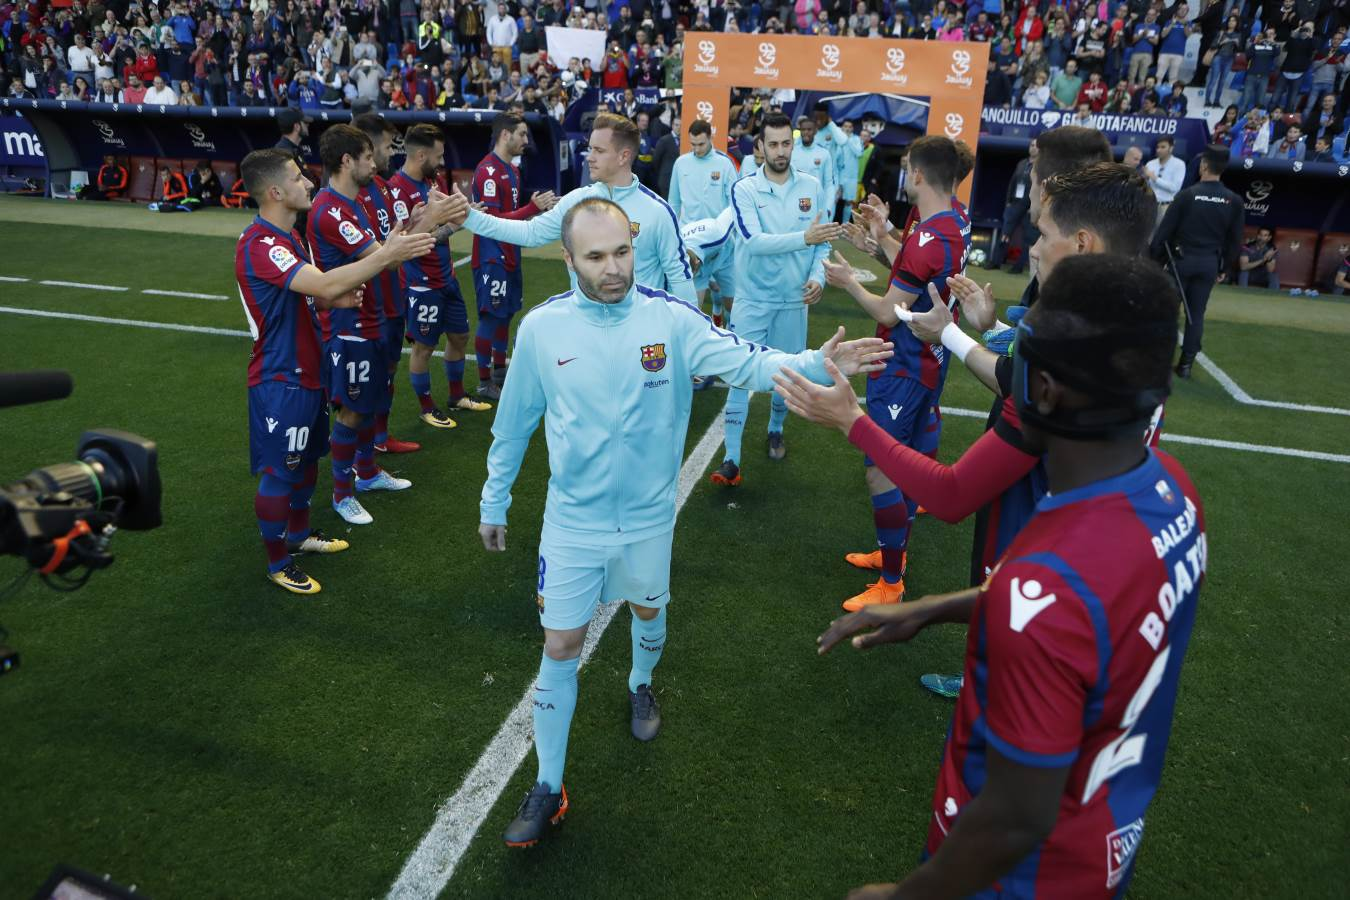 ���� Moltes gràcies, @LevanteUD #FairPlay https://t.co/a9xdgrG7Dj